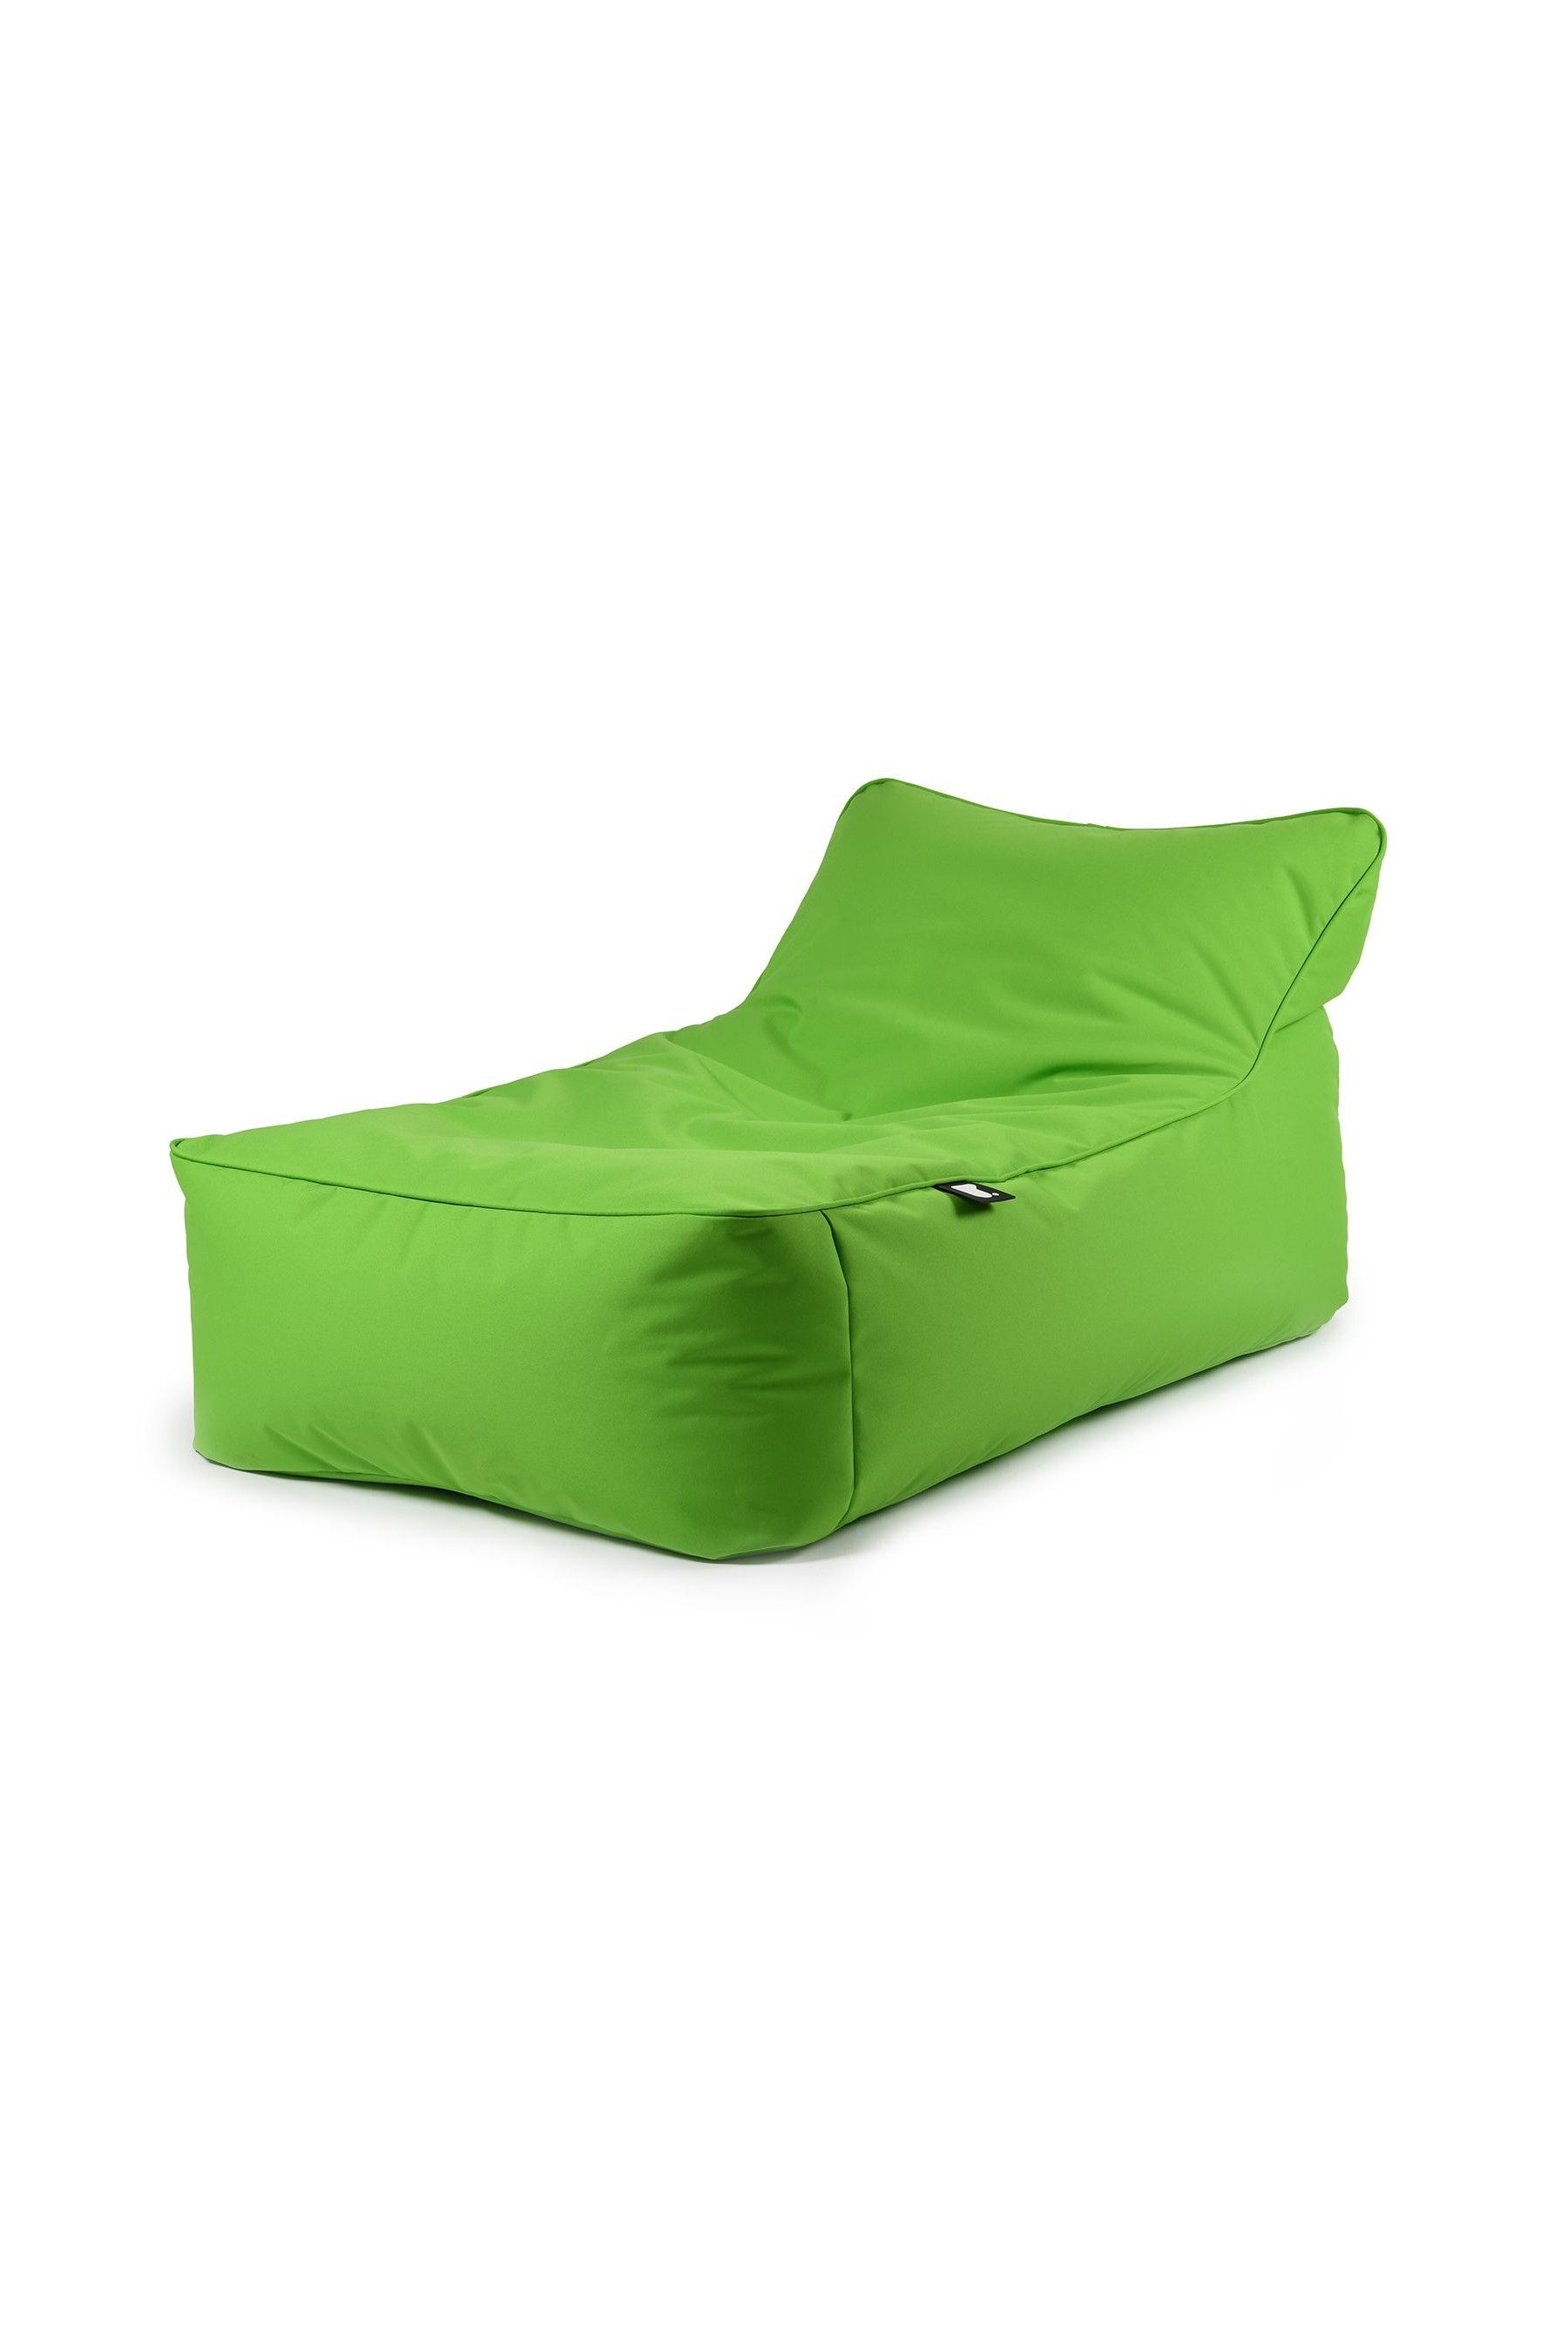 Pleasing Outdoor Bean Bag Bed By Extreme Lounging Products In 2019 Cjindustries Chair Design For Home Cjindustriesco